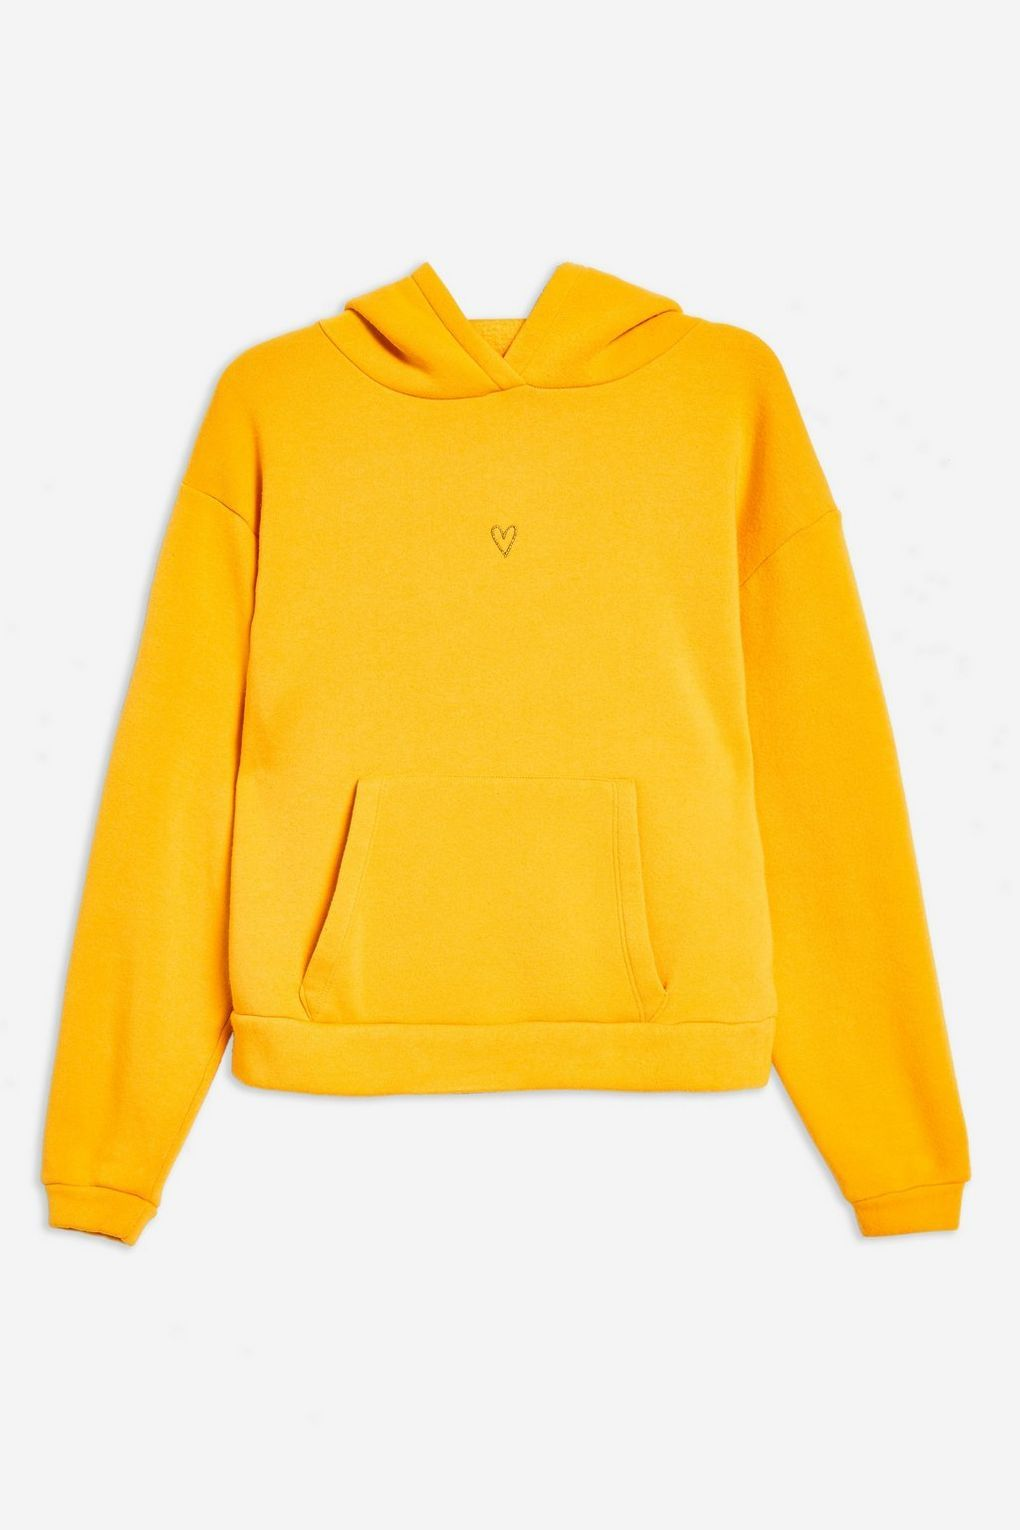 e7094122a7a Yellow Heart Hoodie - New In Fashion - New In - Topshop USA